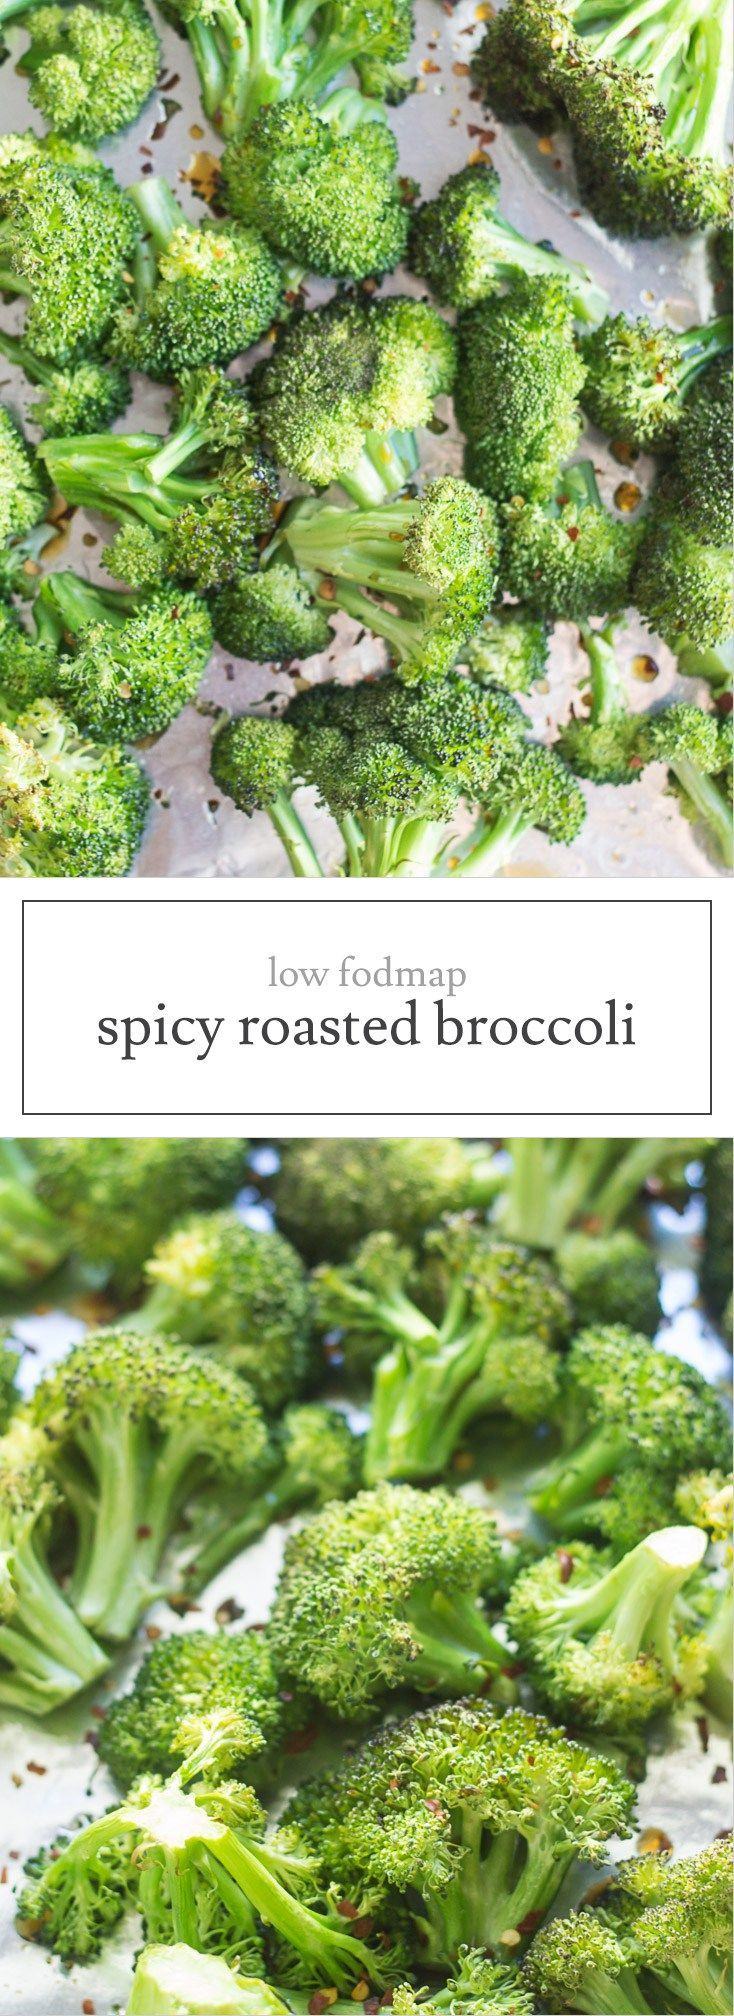 Low Fodmap Spicy Roasted Broccoli Recipe Fodmap Friendly Recipes Low Fodmap Diet Recipes Fodmap